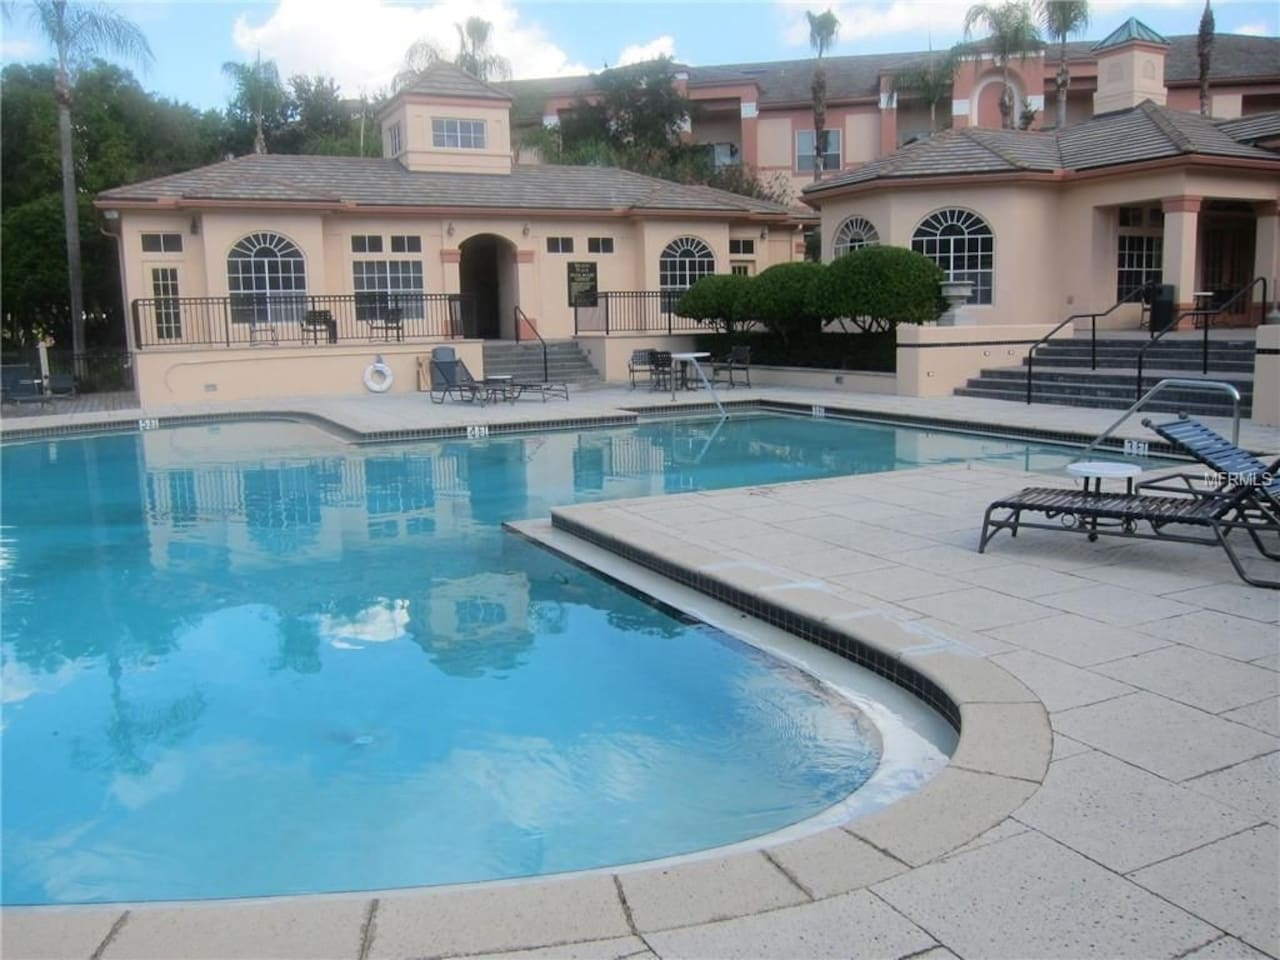 One of two community pools